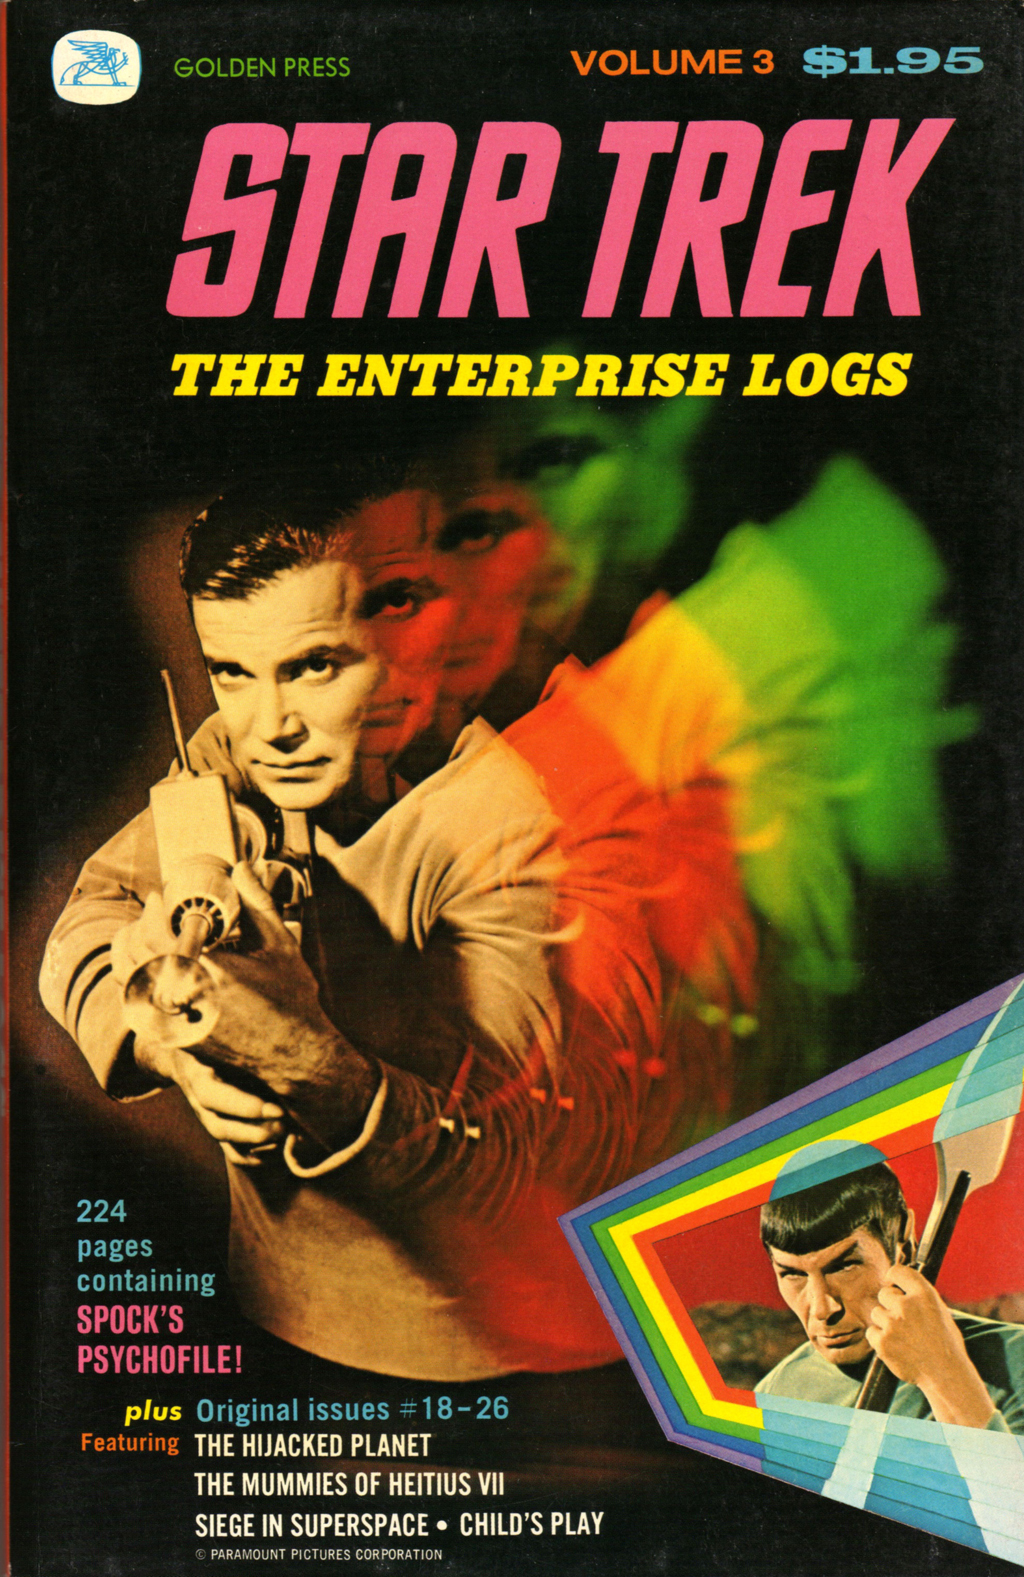 File:Enterprise Logs Volume3.jpg